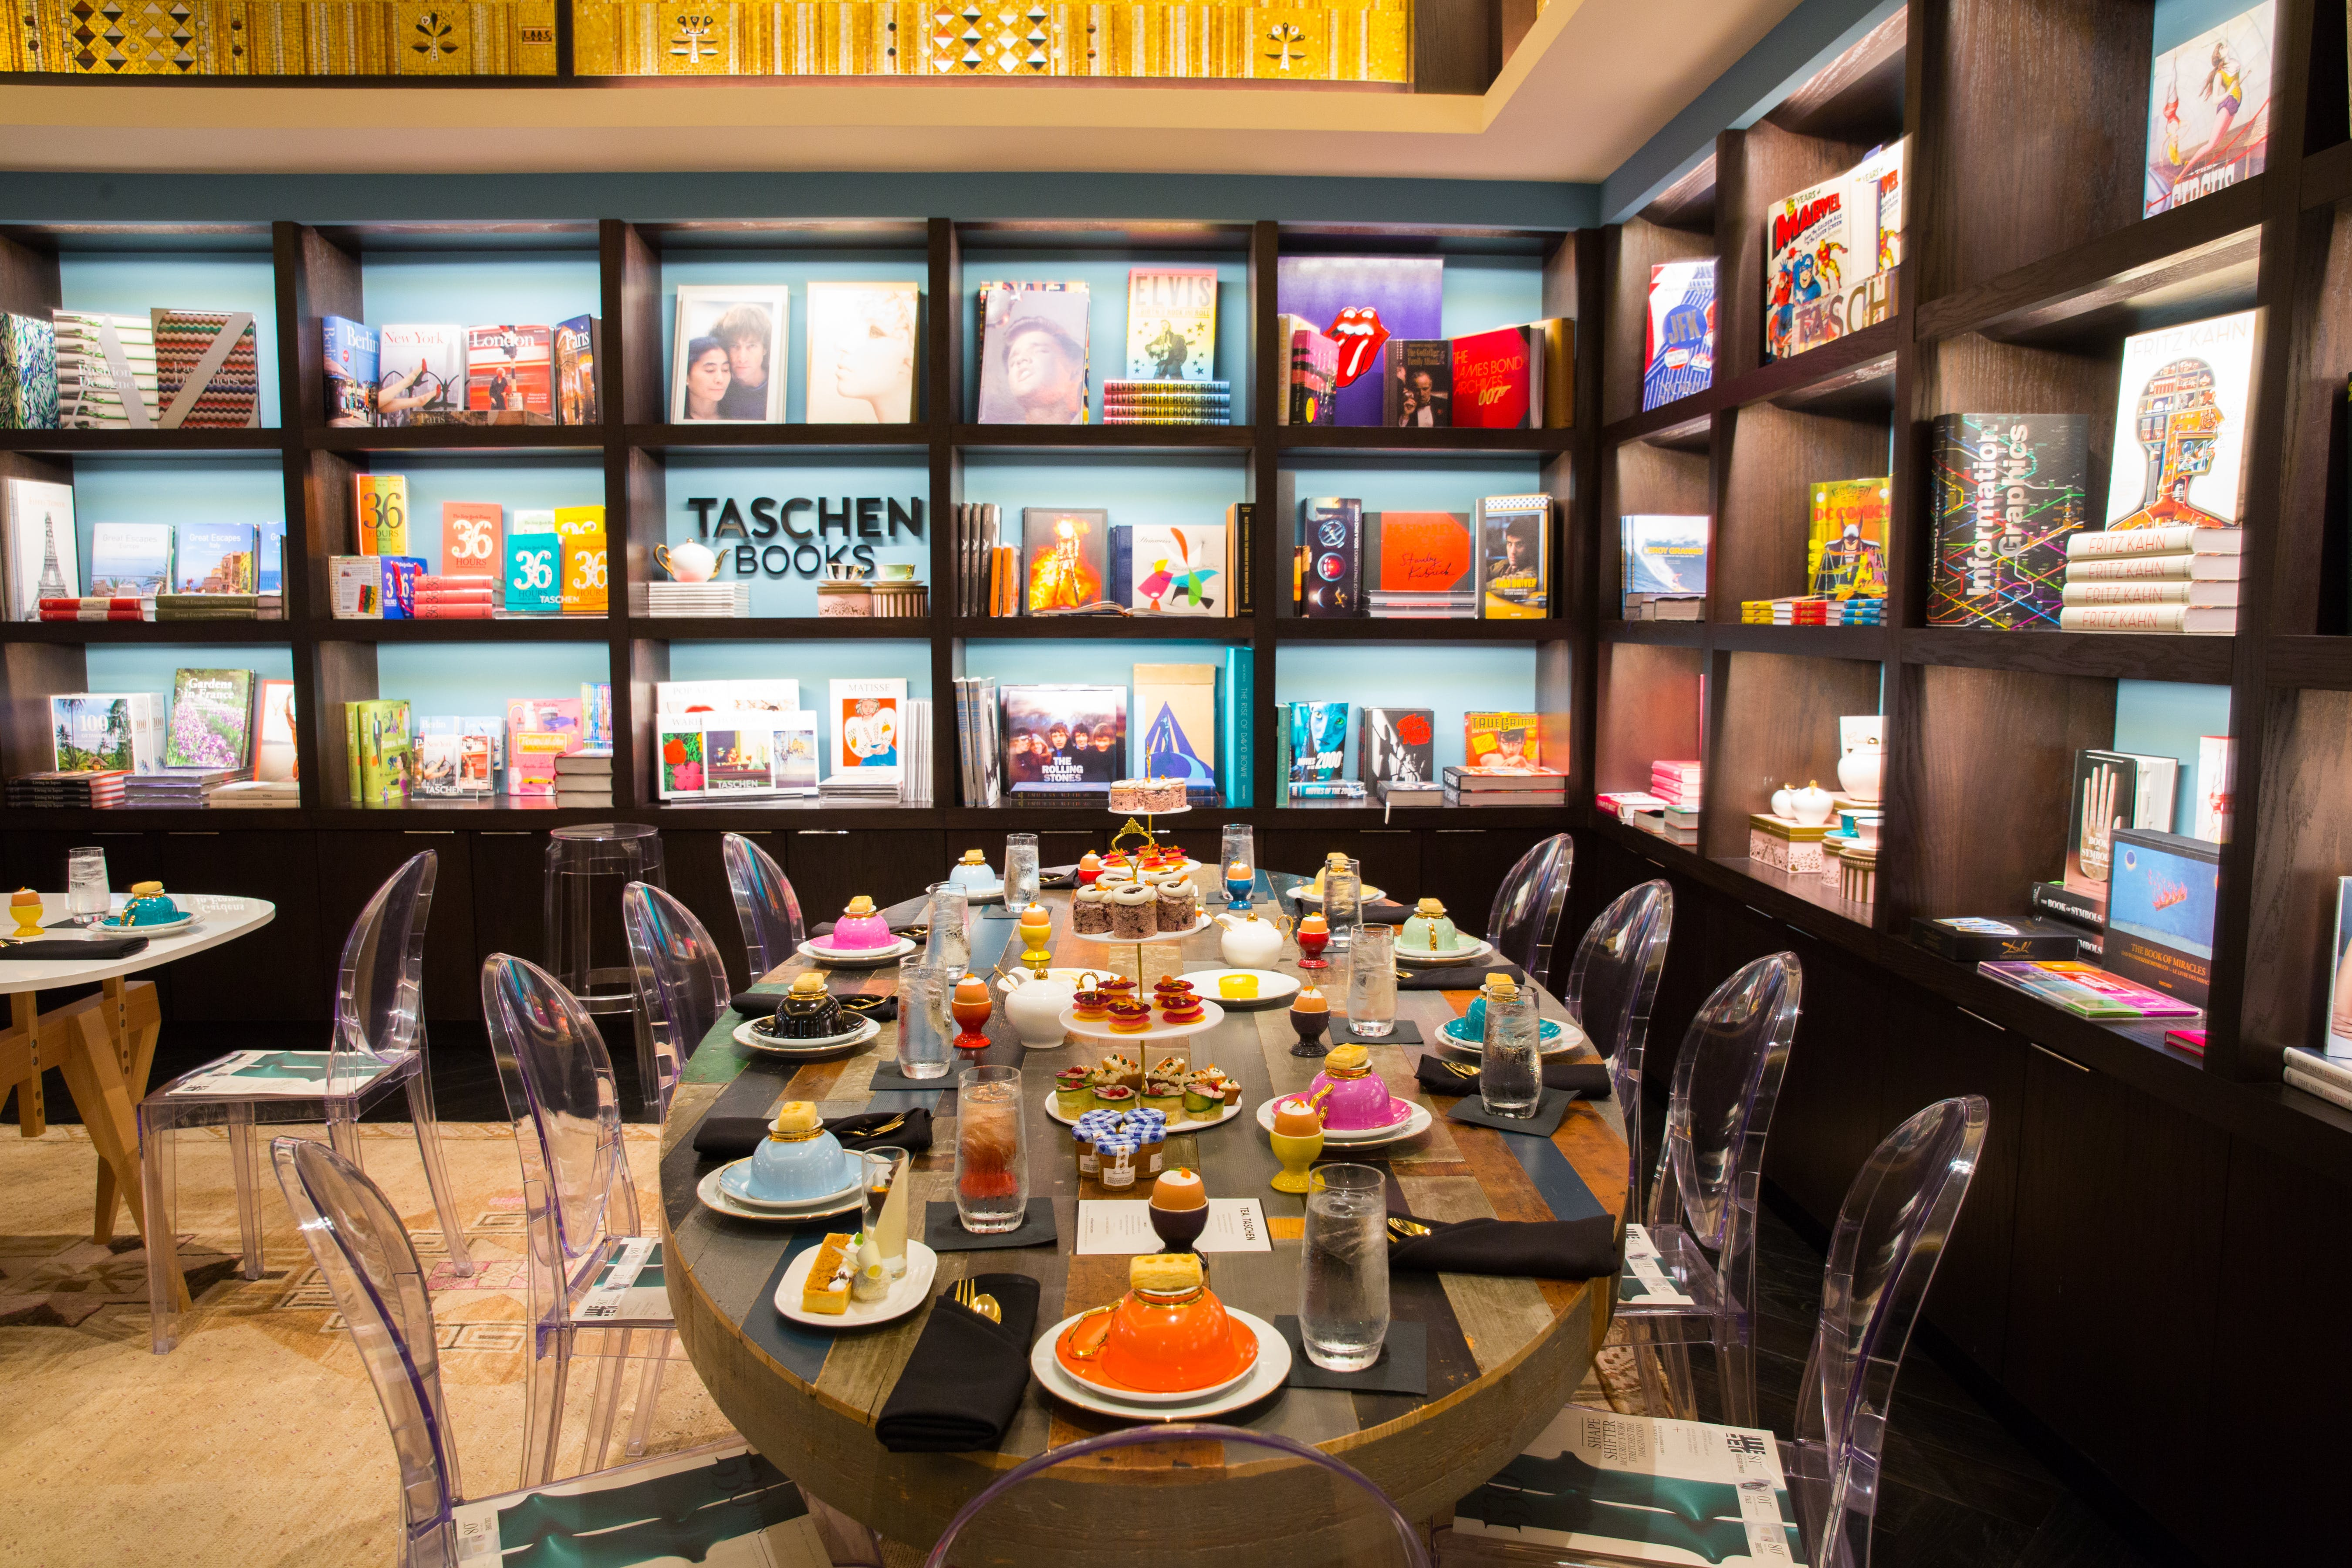 the joule taschen library dal high tea 11.1